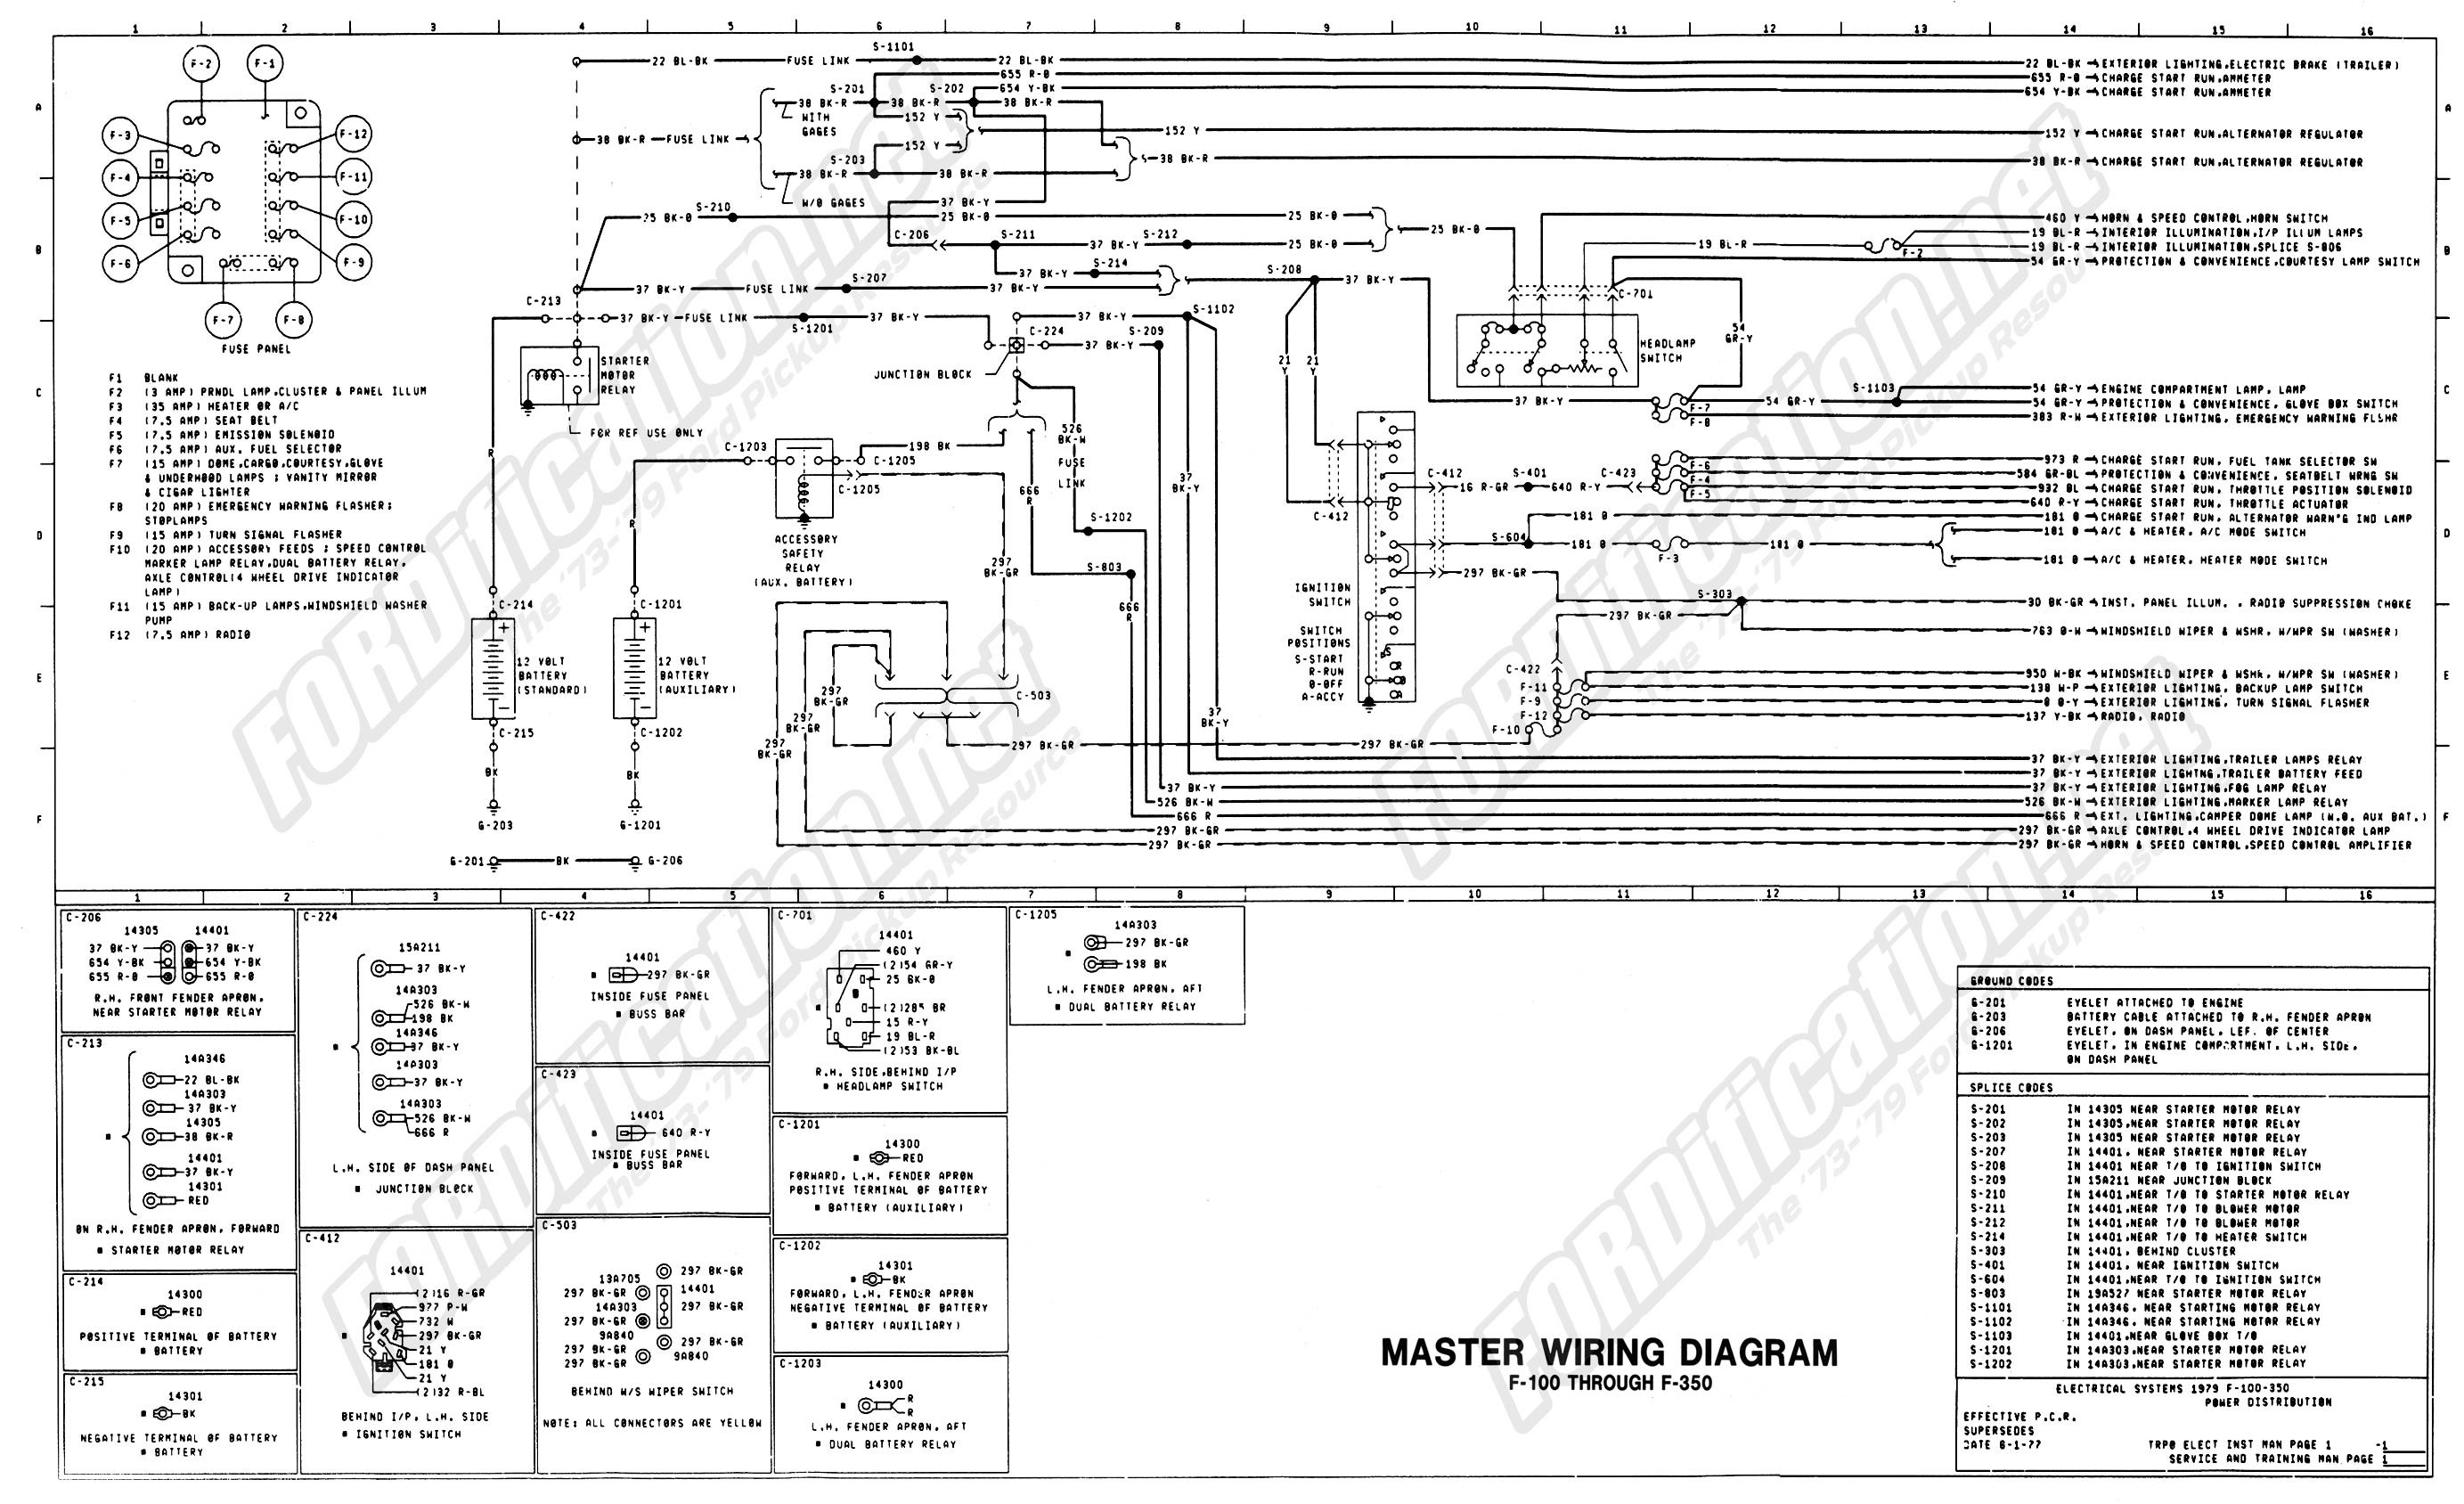 1976 Chevy Truck Wiring Diagram F150 Wiring Harness Further 1970 ford torino Ignition Wiring Diagram Of 1976 Chevy Truck Wiring Diagram